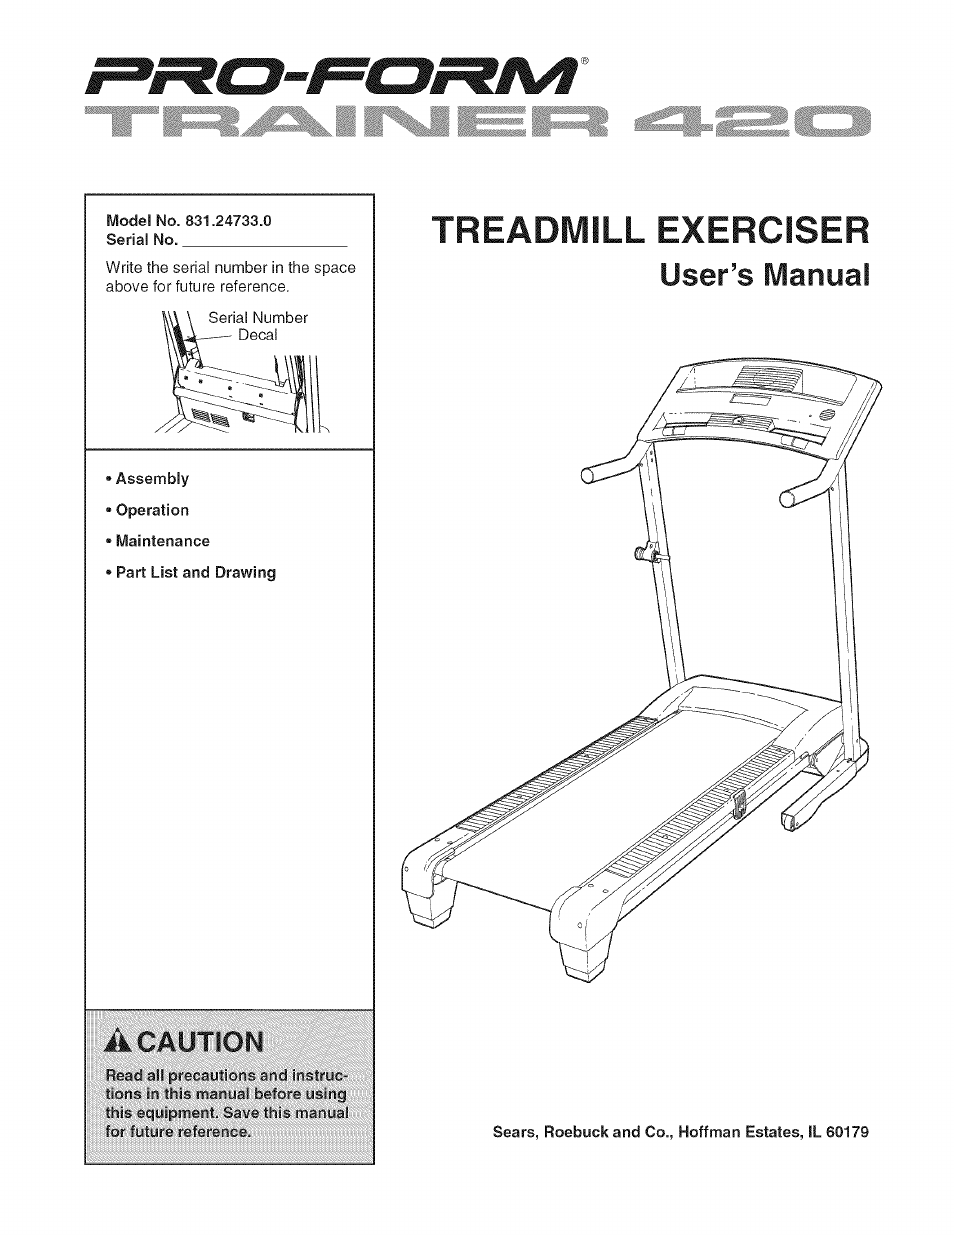 Sears PRO-FORM 831 24733 0 User Manual | 28 pages